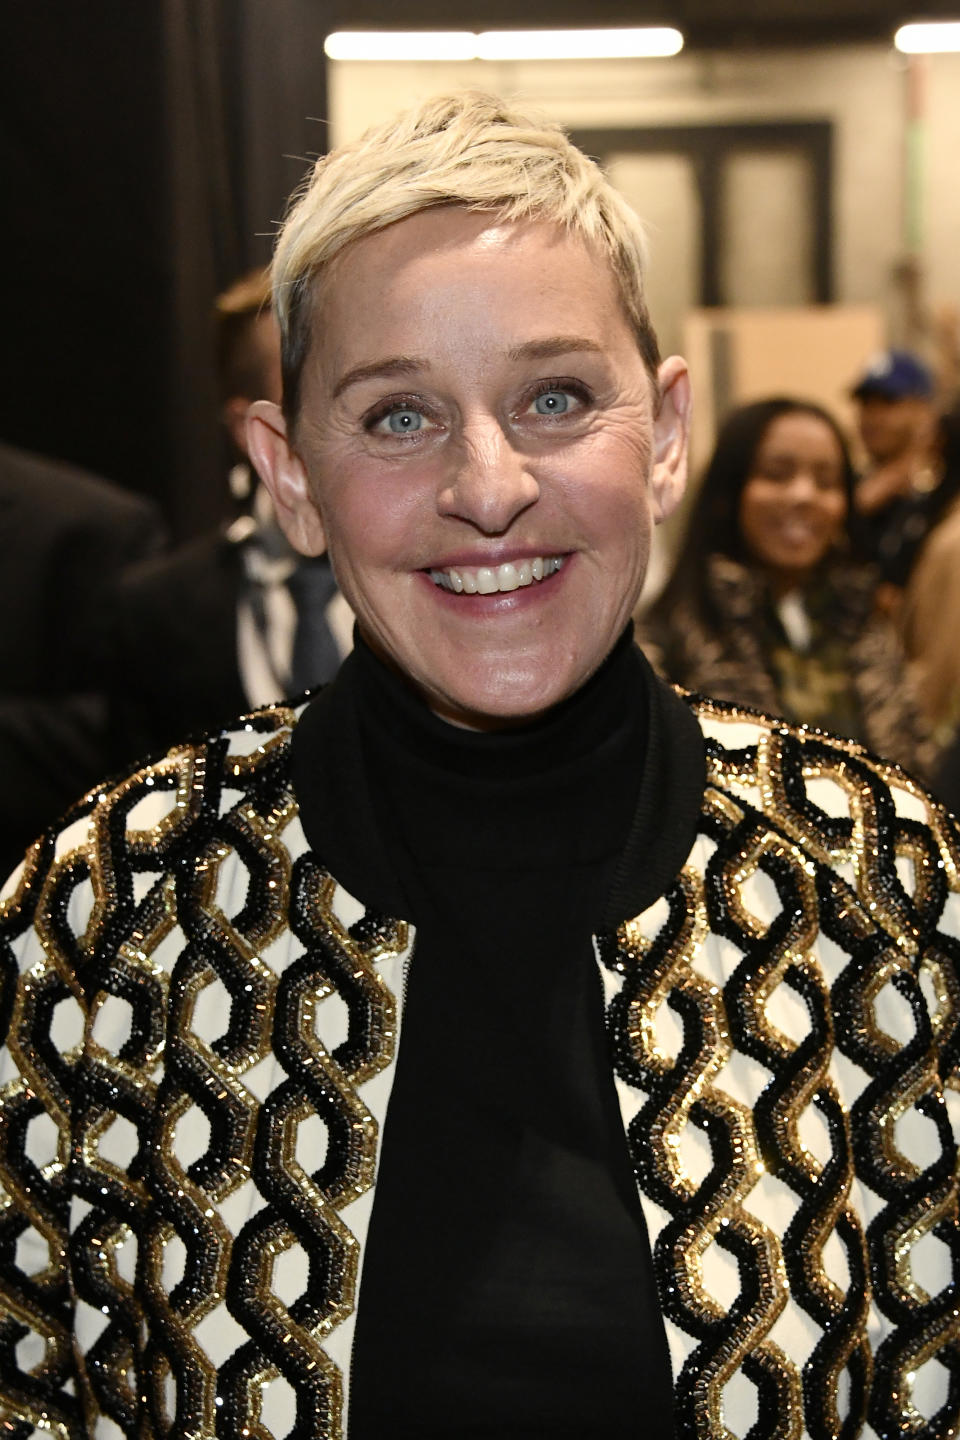 Ellen DeGeneres attends the 62nd Annual GRAMMY Awards at STAPLES Center on January 26, 2020 in Los Angeles, California. (Photo by Frazer Harrison/Getty Images for The Recording Academy)